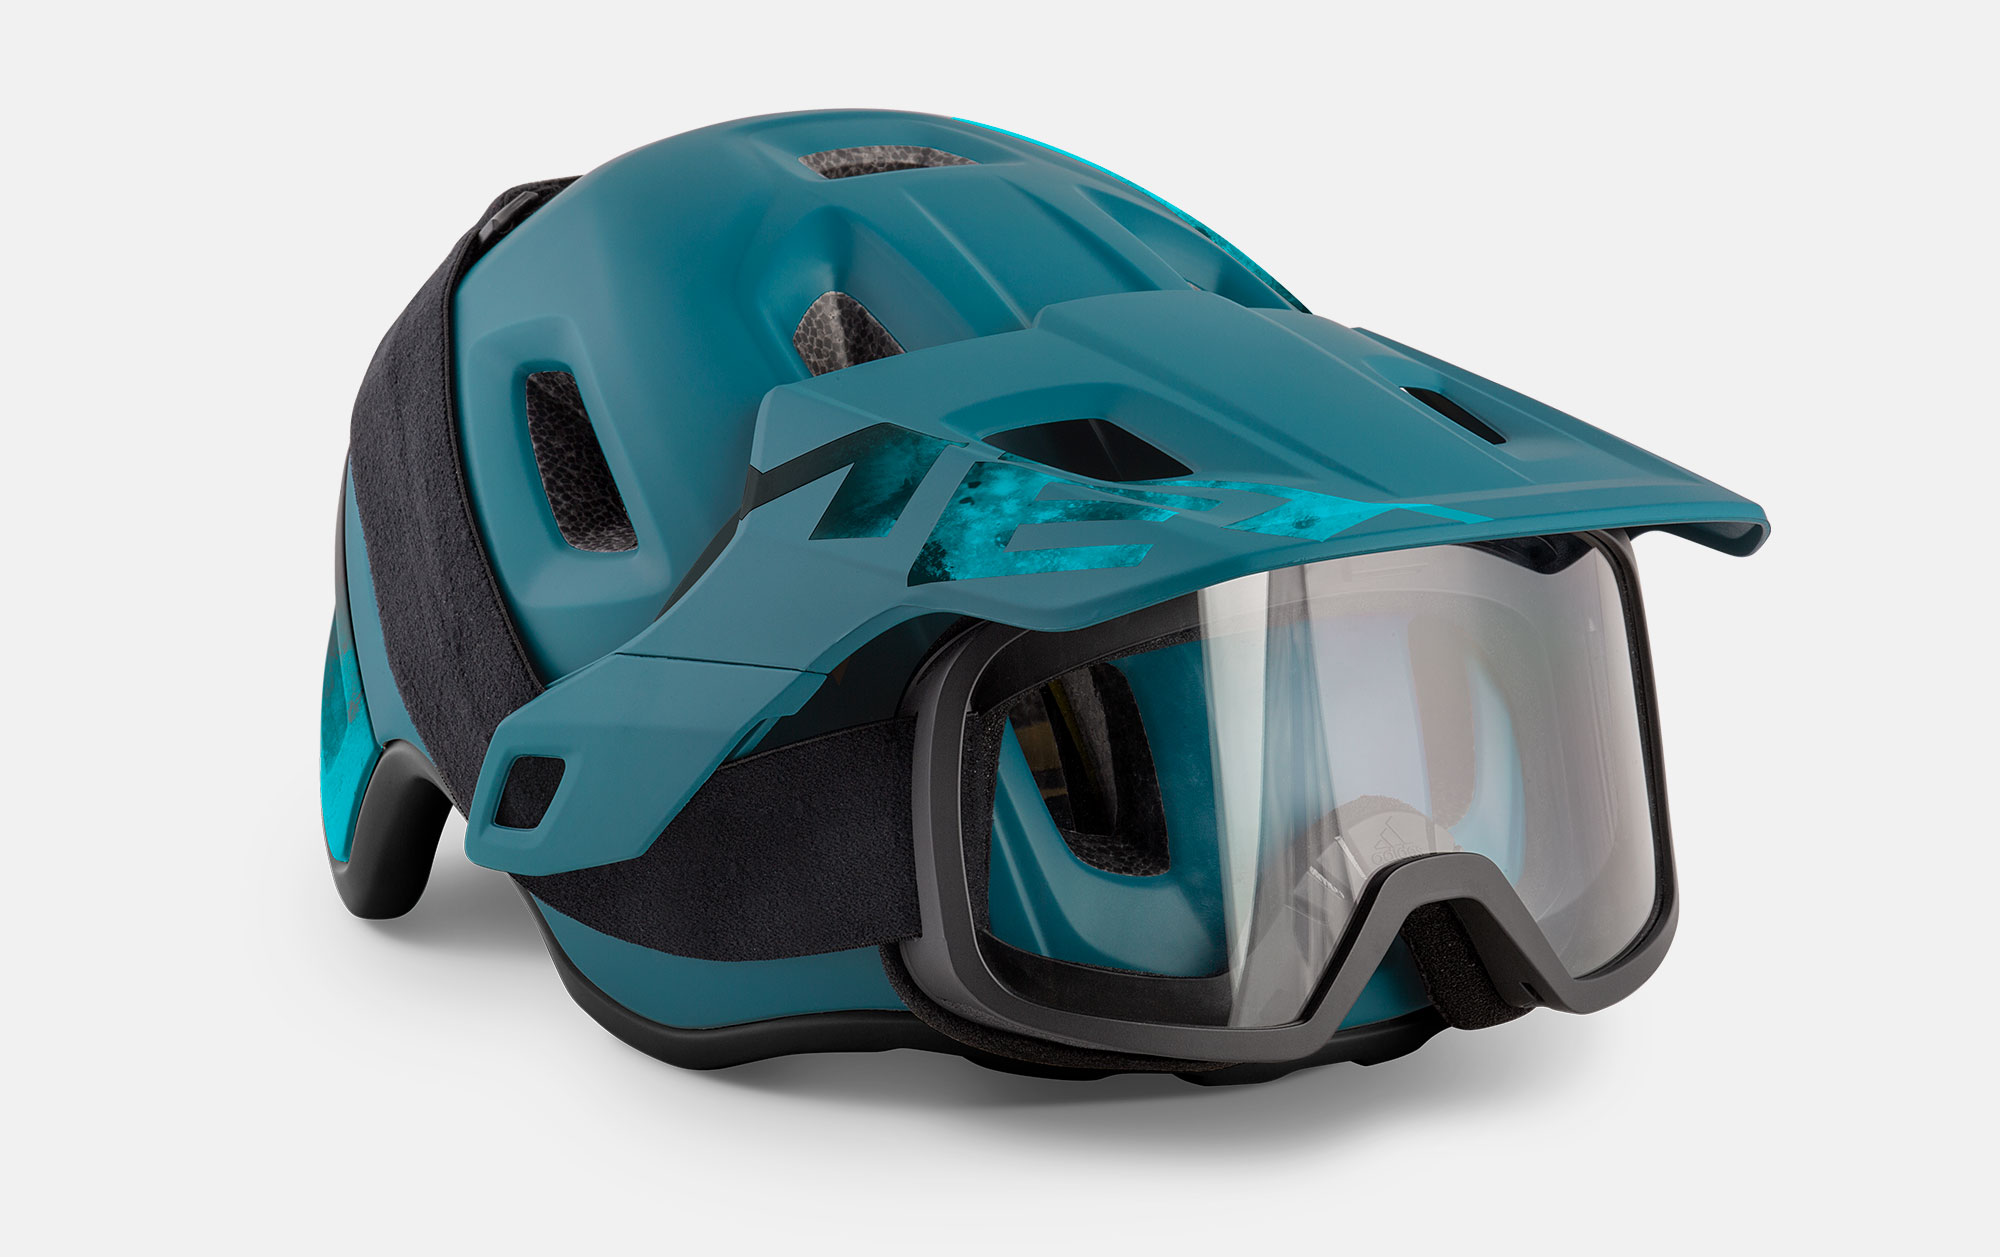 MET Roam Mips Enduro, Trail and E-MTB Helmet Adjustable Visor